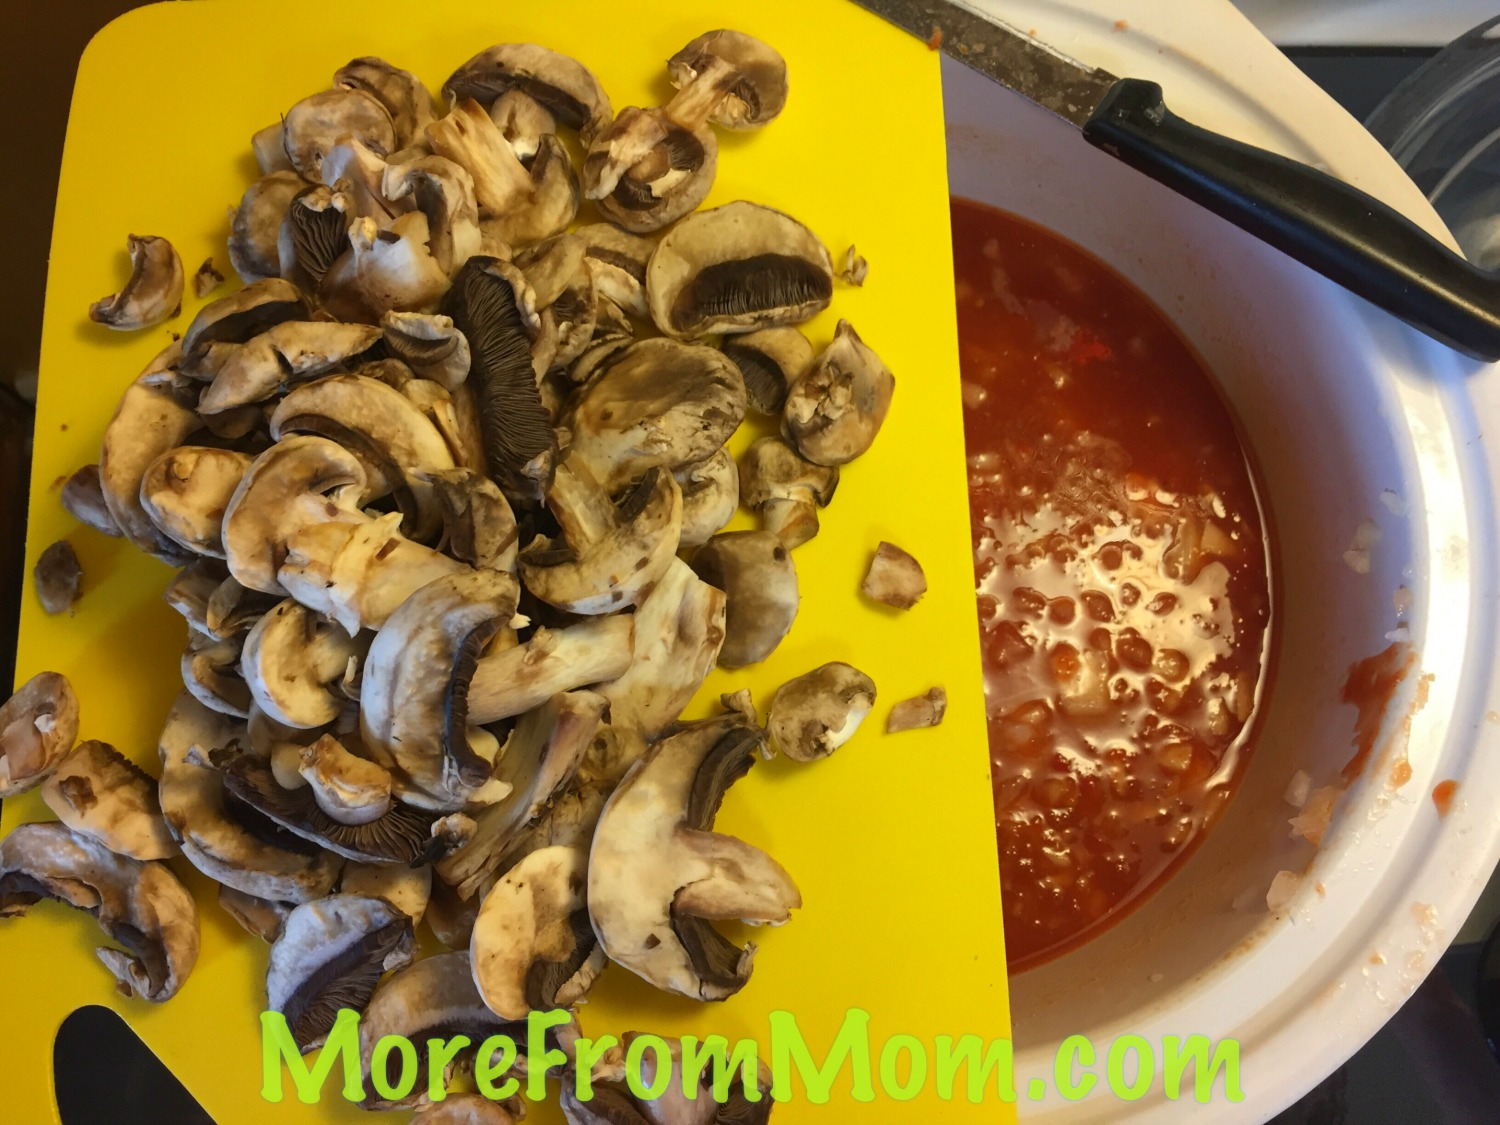 Add sliced mushrooms